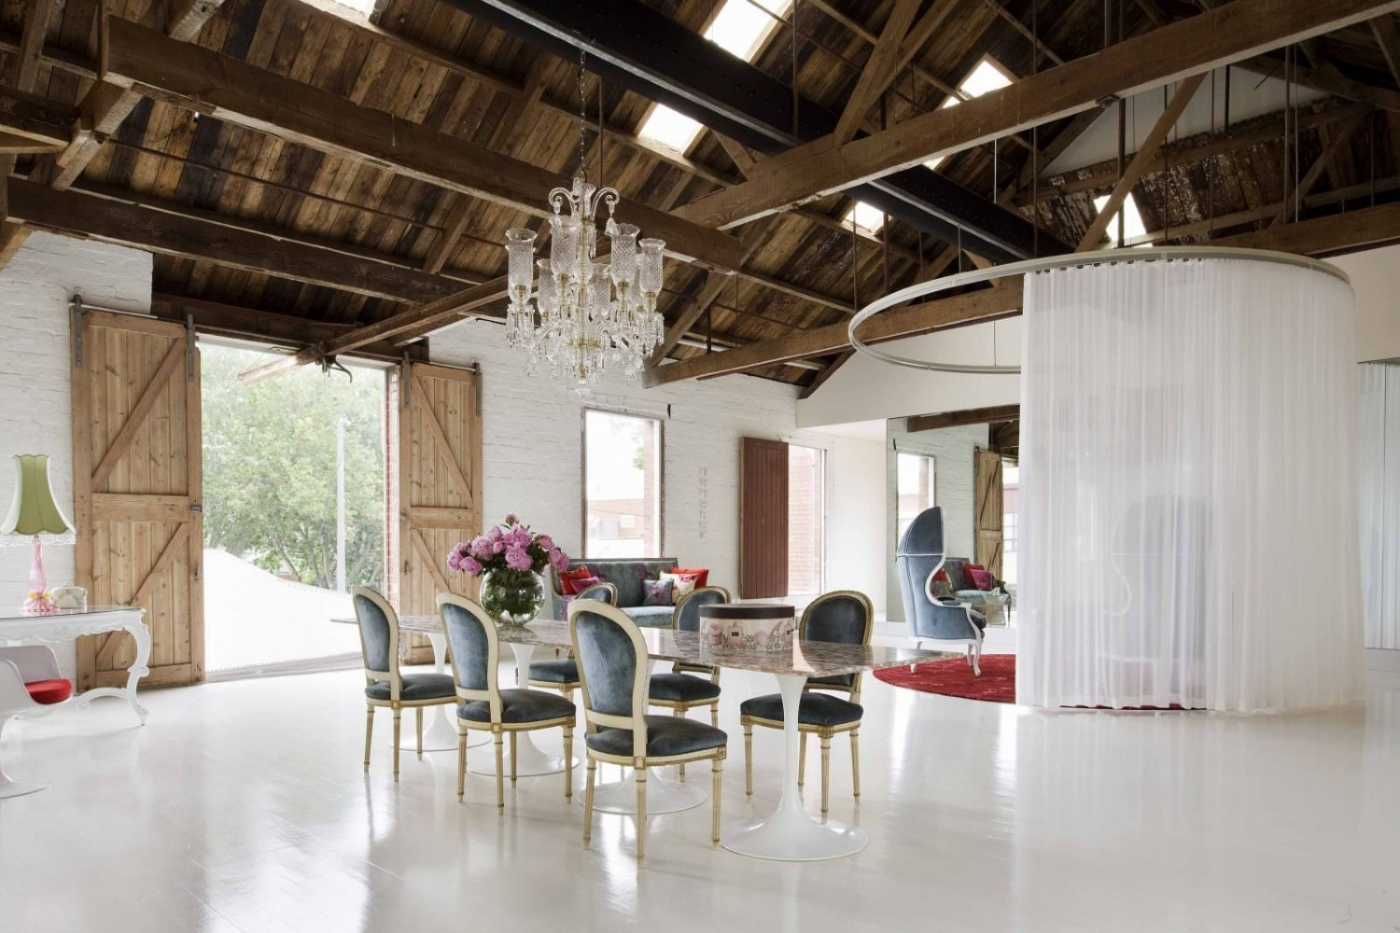 Amazingly Fancy, Luxurious And Modern Interiors From David Hicks ft david hicks Amazingly Fancy, Luxurious And Modern Interiors From David Hicks Amazingly Fancy Luxurious And Modern Interiors From David Hicks ft 1400x933